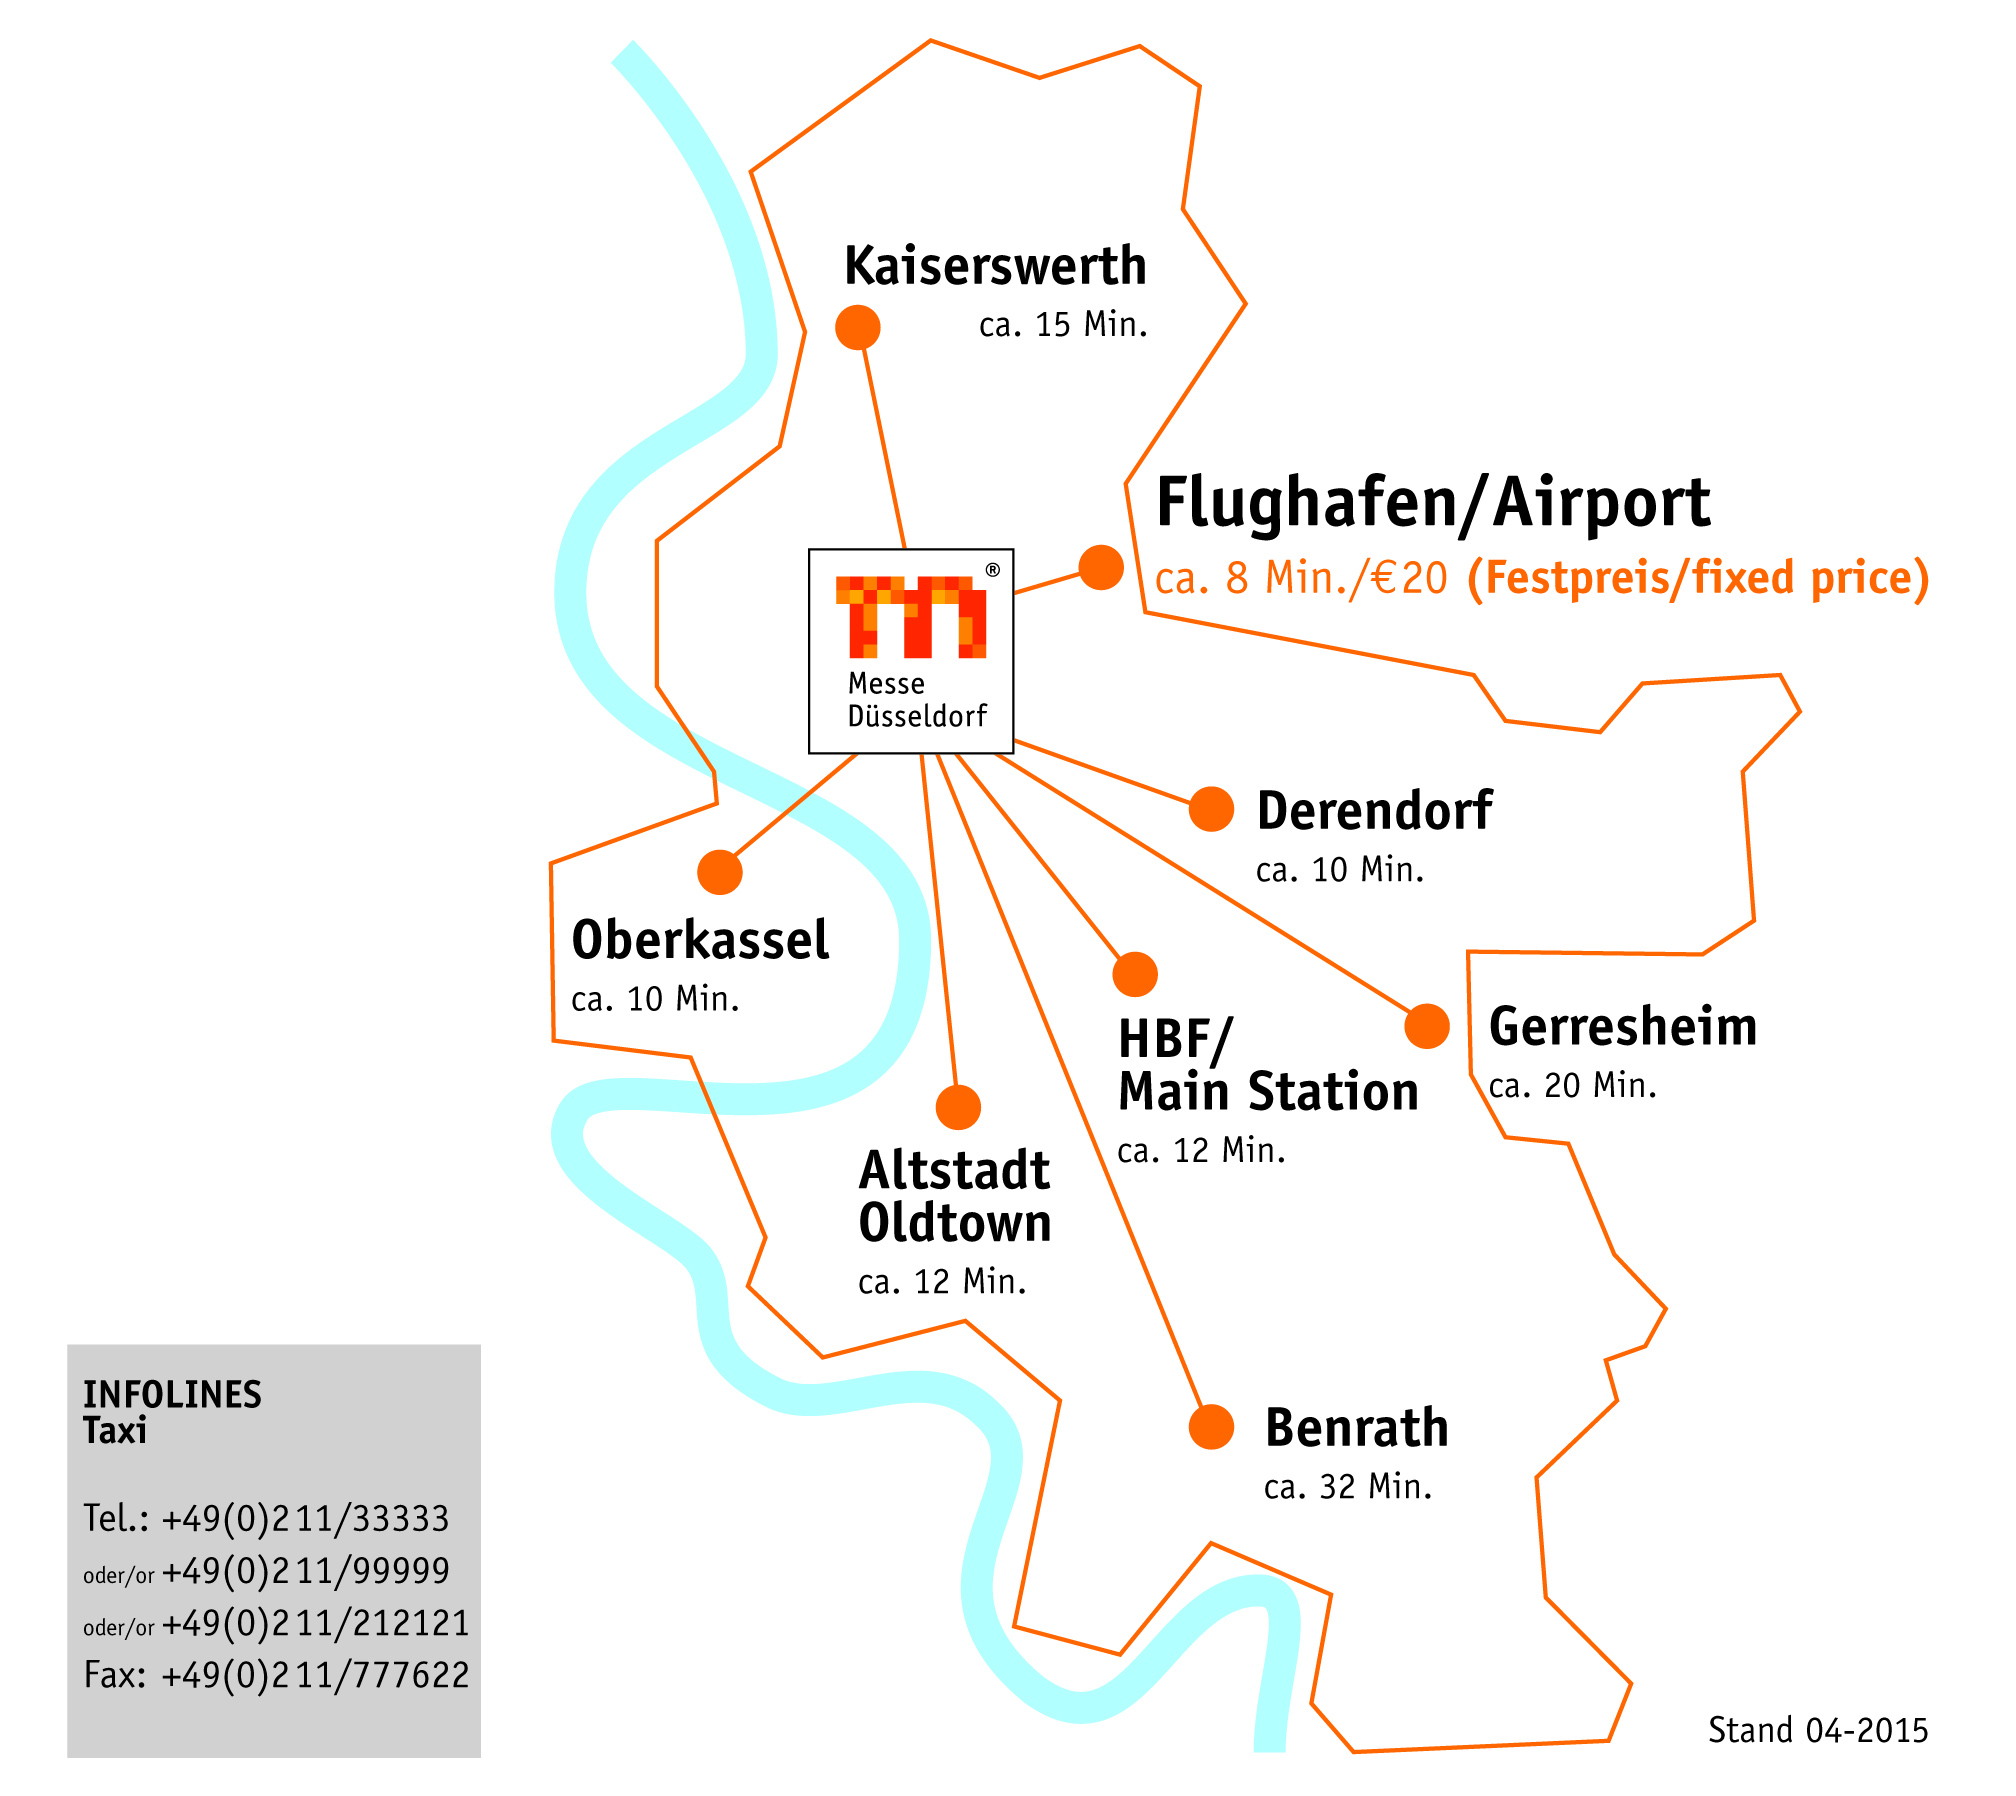 Travelling & Hotel -- EuroCIS Messe on dusseldorf subway map, old town dusseldorf map, dusseldorf rail map,